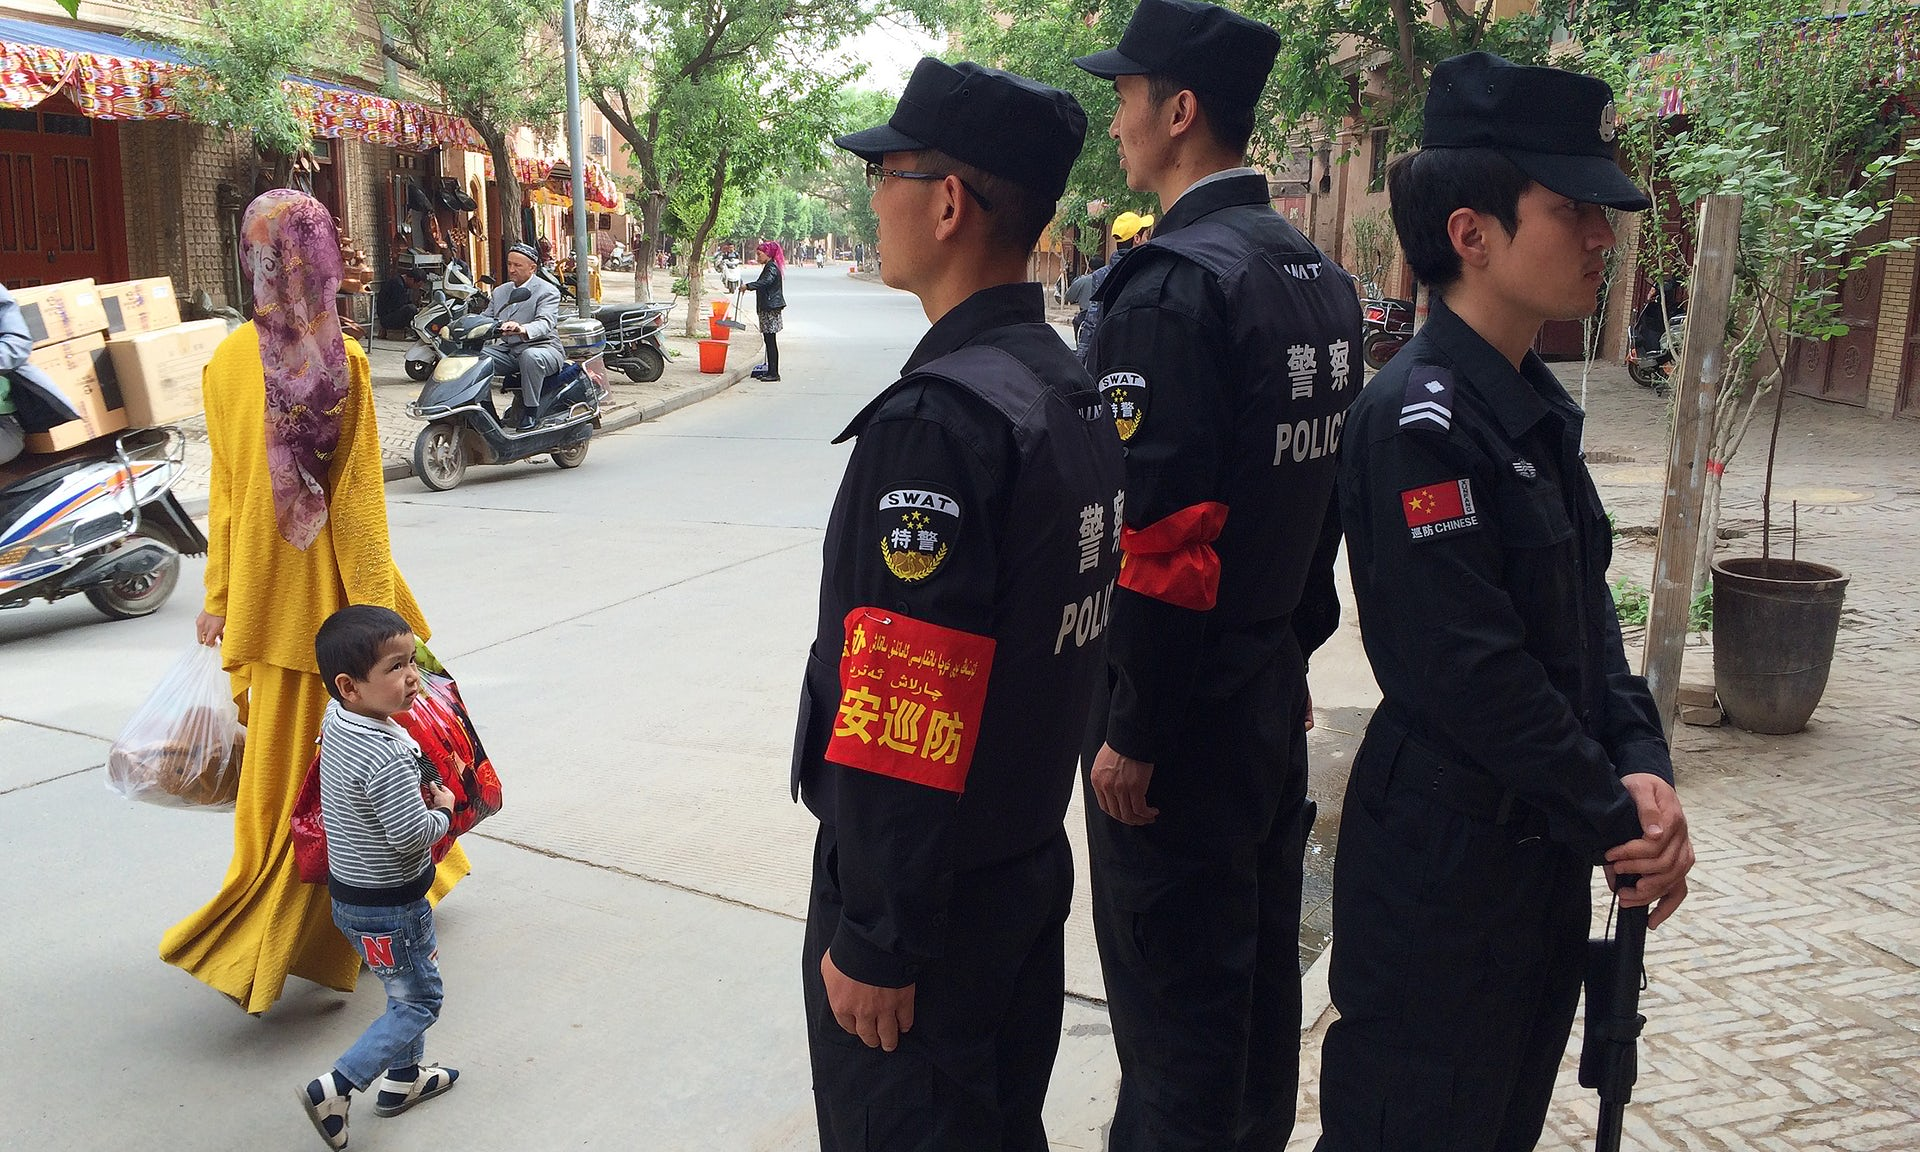 The 'Perfect Police State' is Emerging in Xinjiang - China Digital Times (CDT)